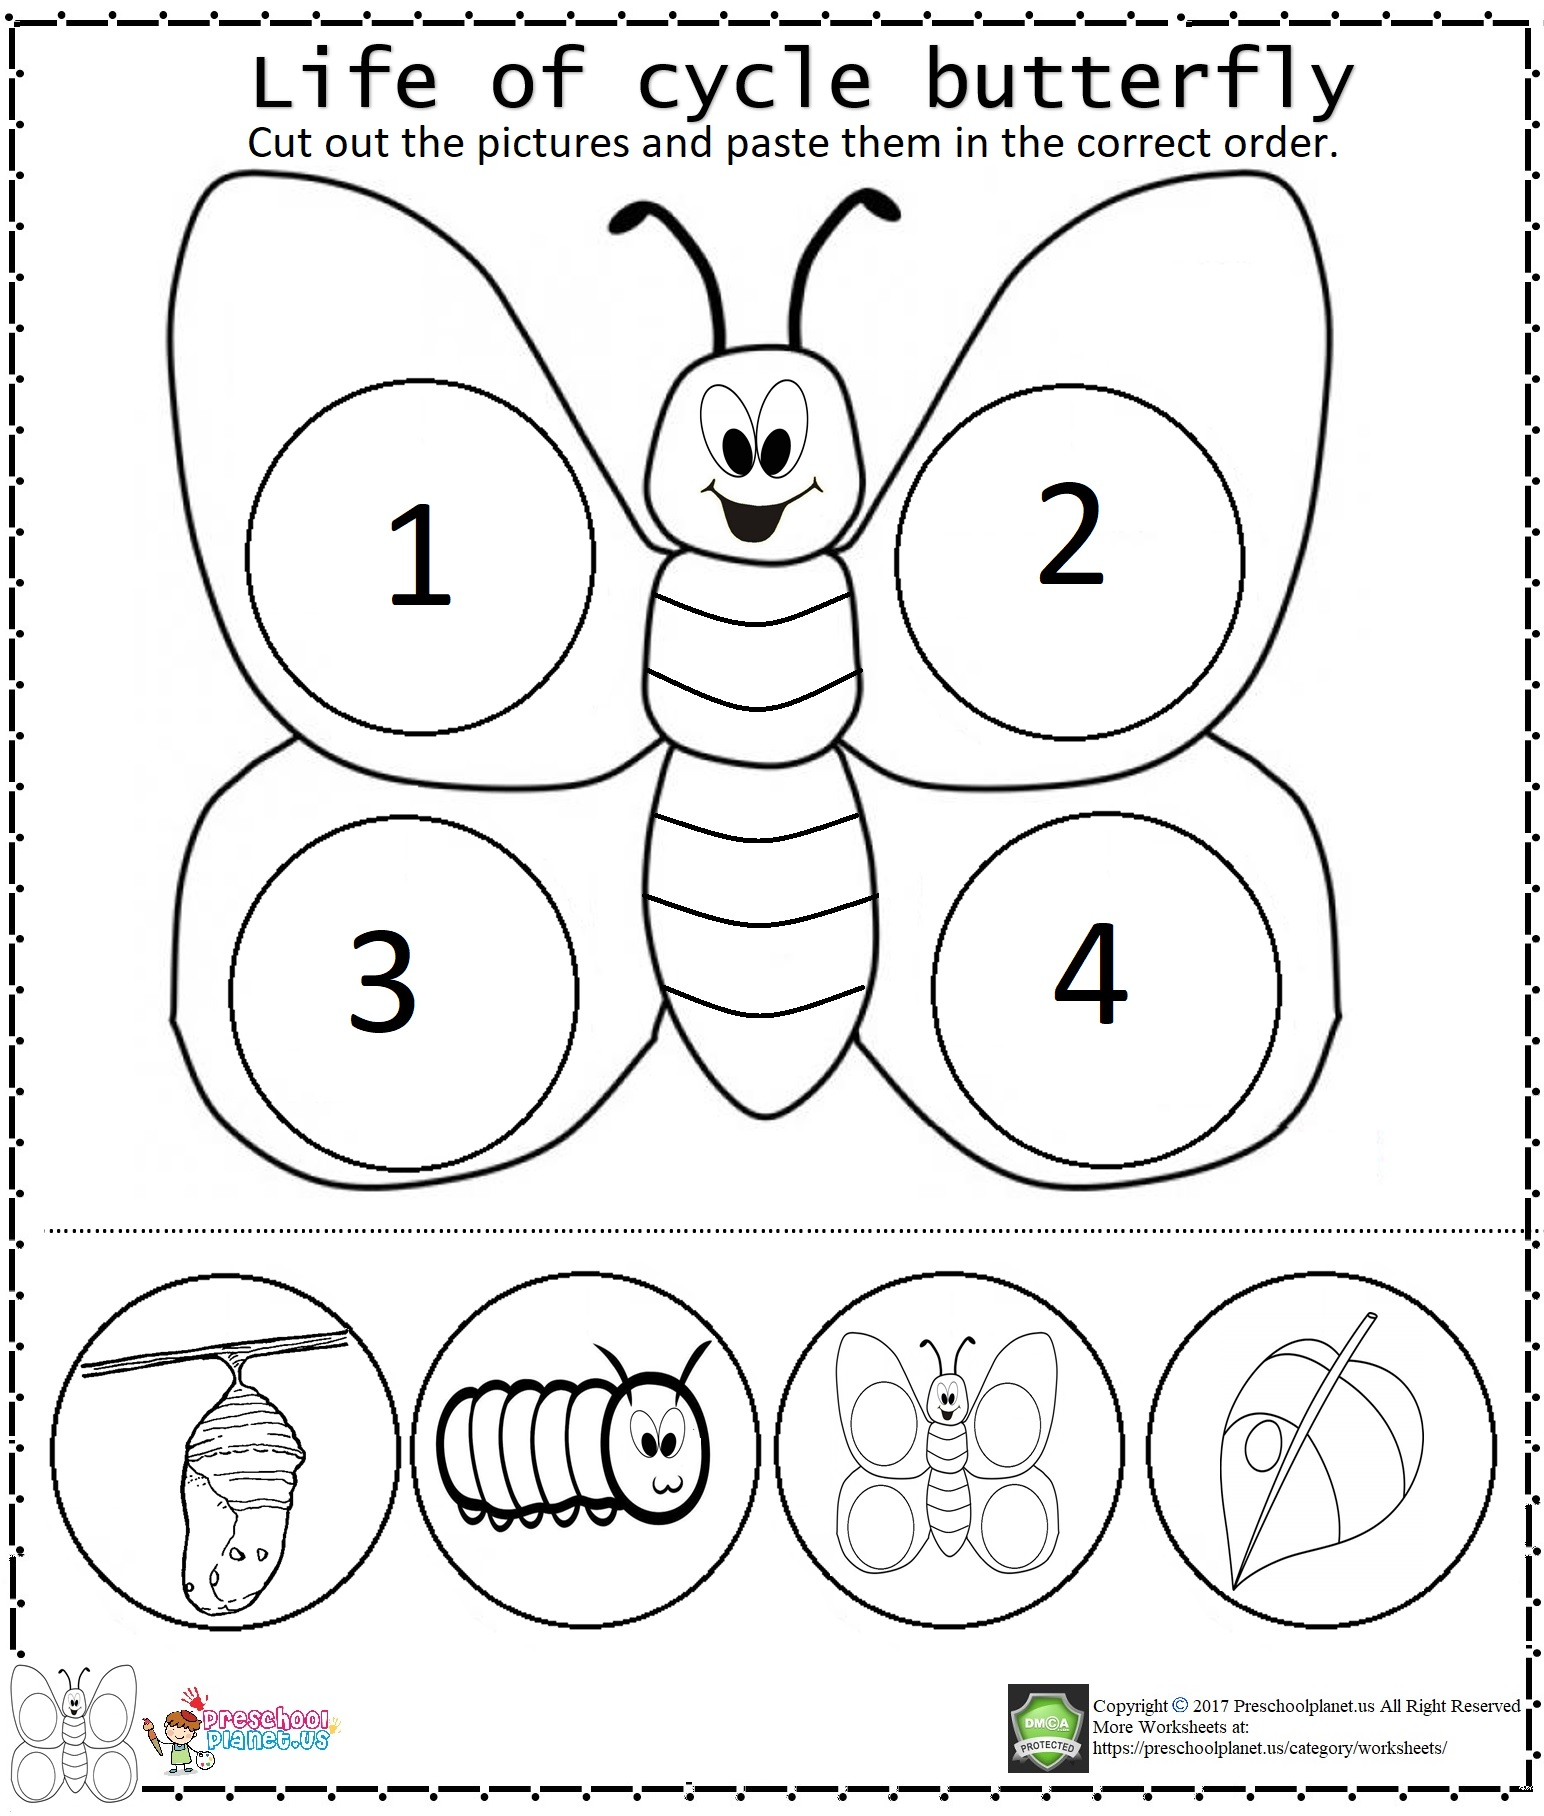 Life Of Cycle Butterfly Worksheet Preschoolplanet